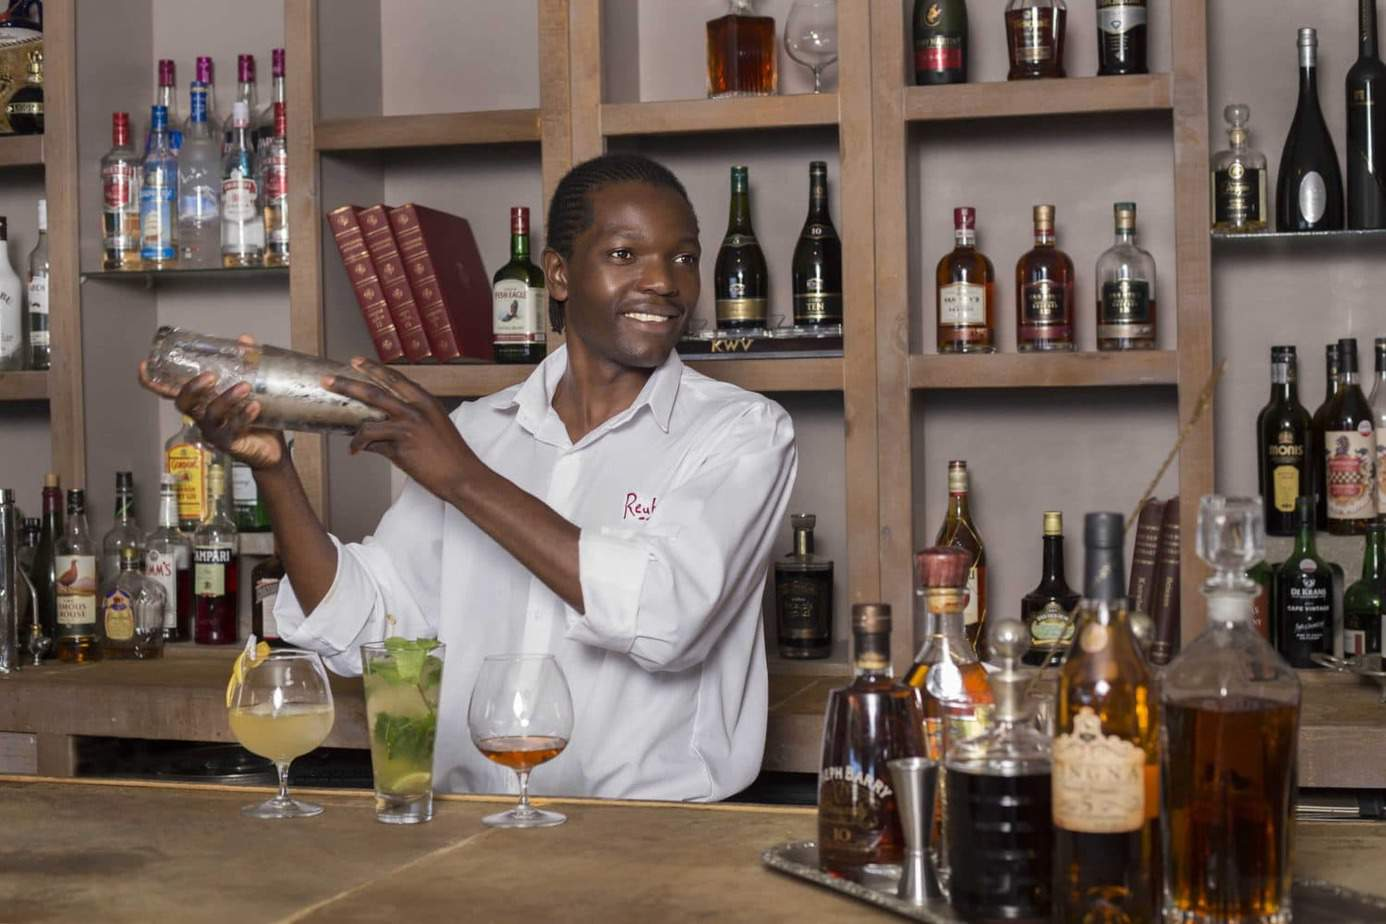 A barman at Abalone House and Spa makes brandy cocktails (Credit: Jason van der Merwe)